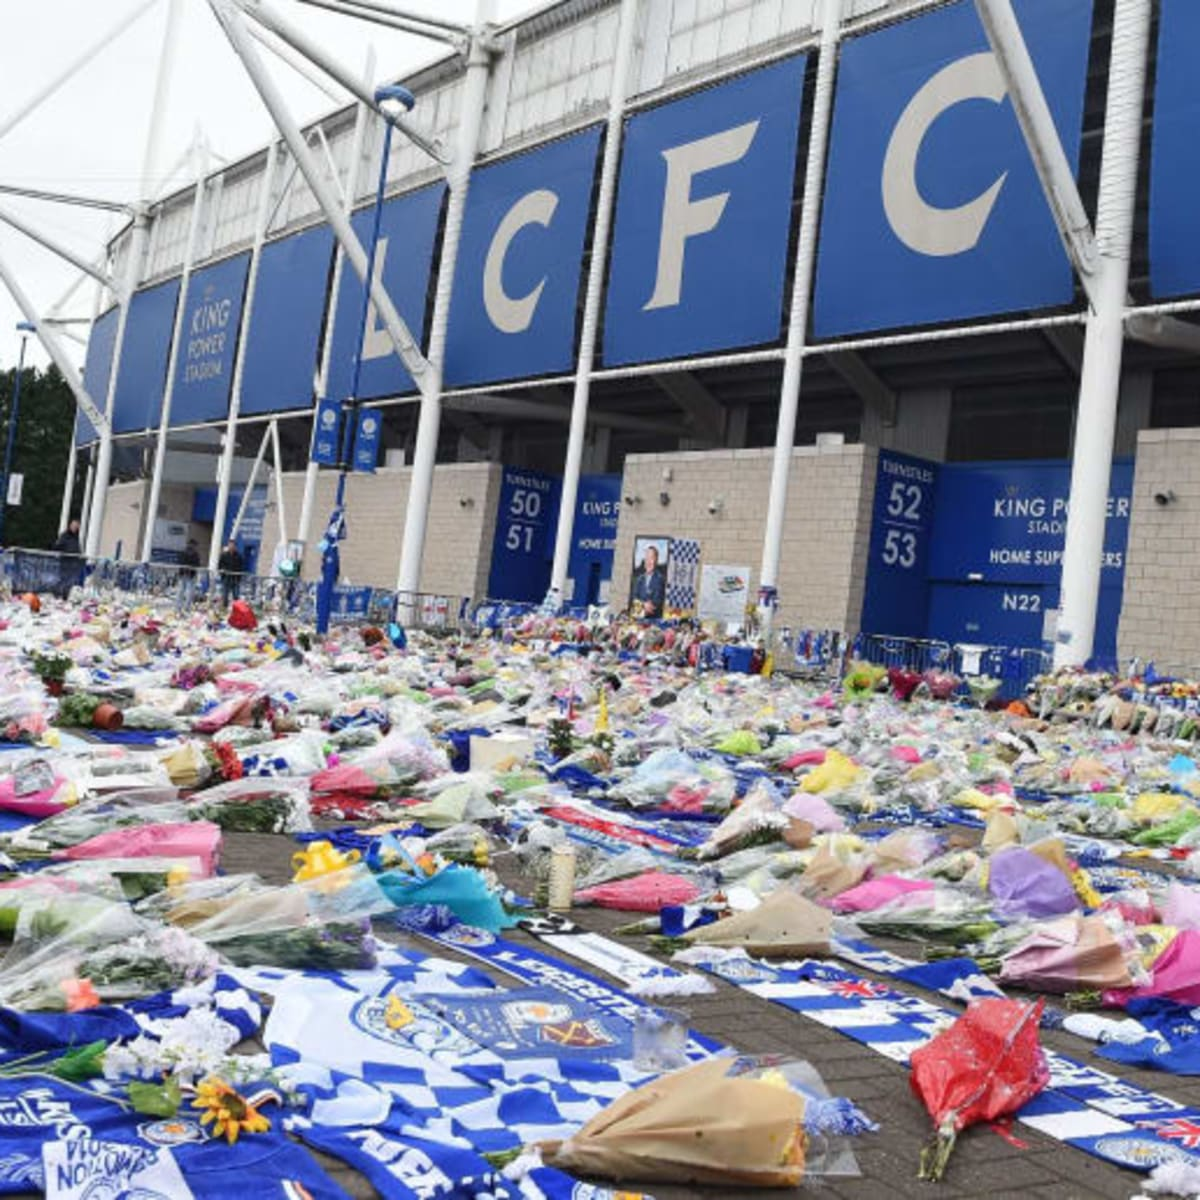 Leicester Stad